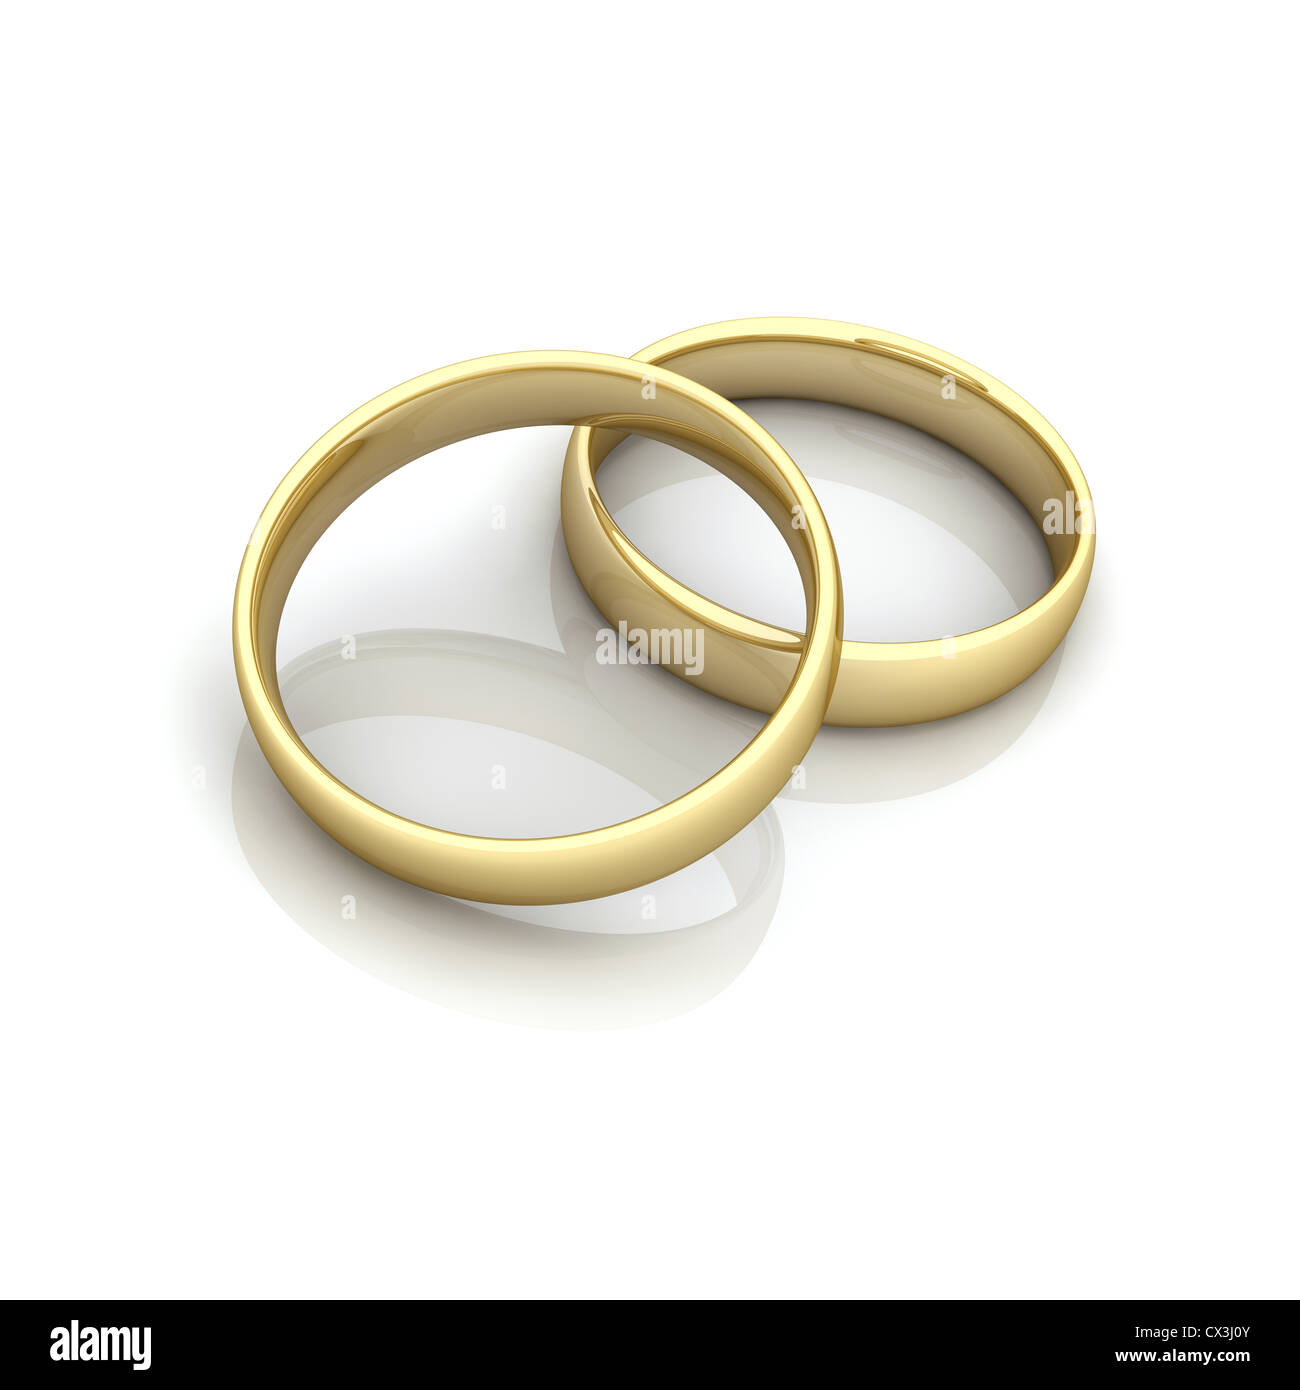 2 Ringe beieinander, Symbol für Fusion / Heirat - 2 rings, symbol for marriage / fusion - Stock Image